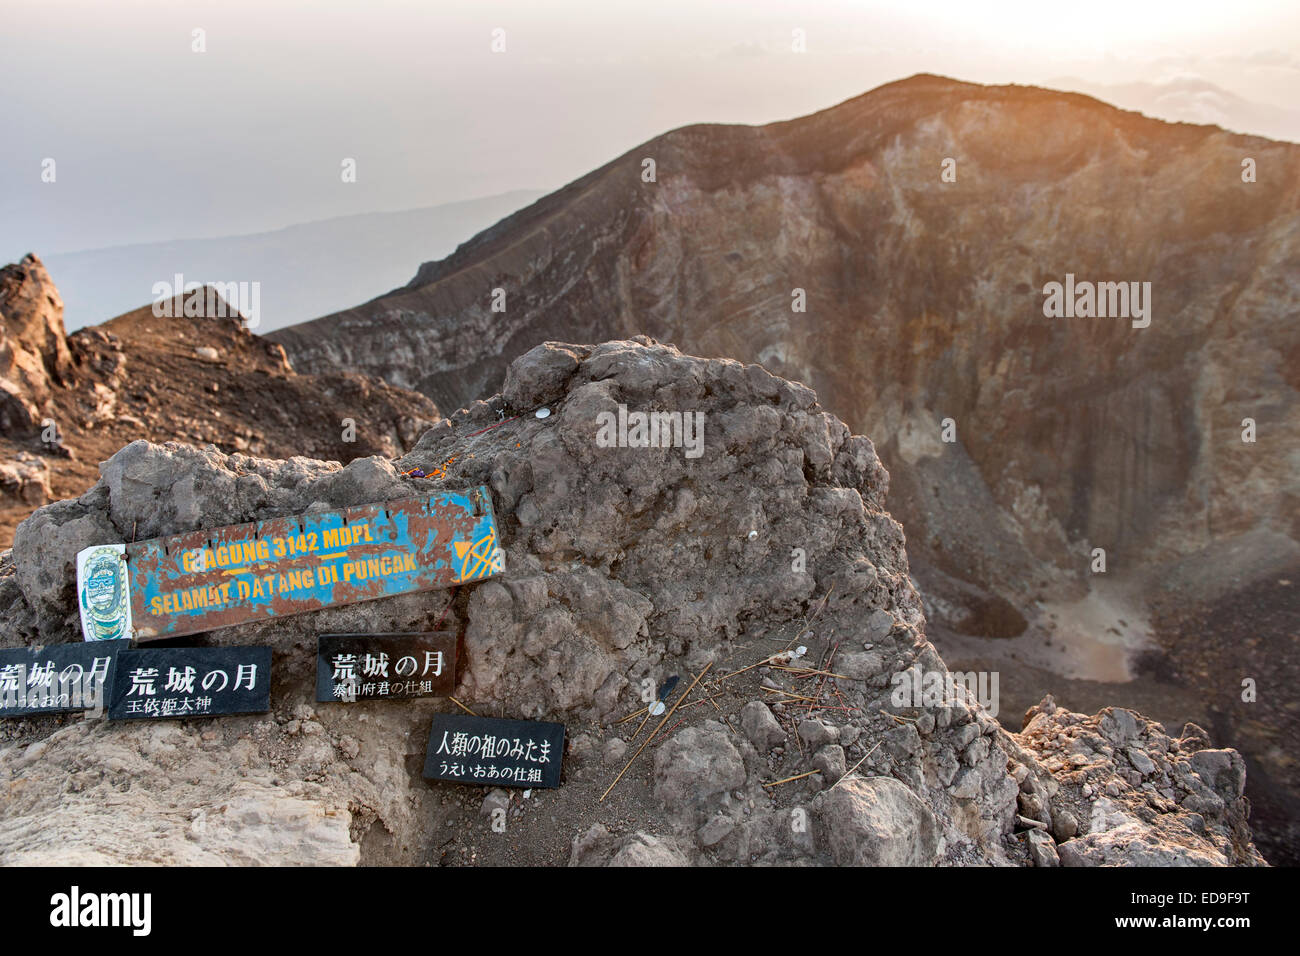 Signs on the summit of Gunung Agung (3142m), the highest volcano on the island of Bali, Indonesia. - Stock Image